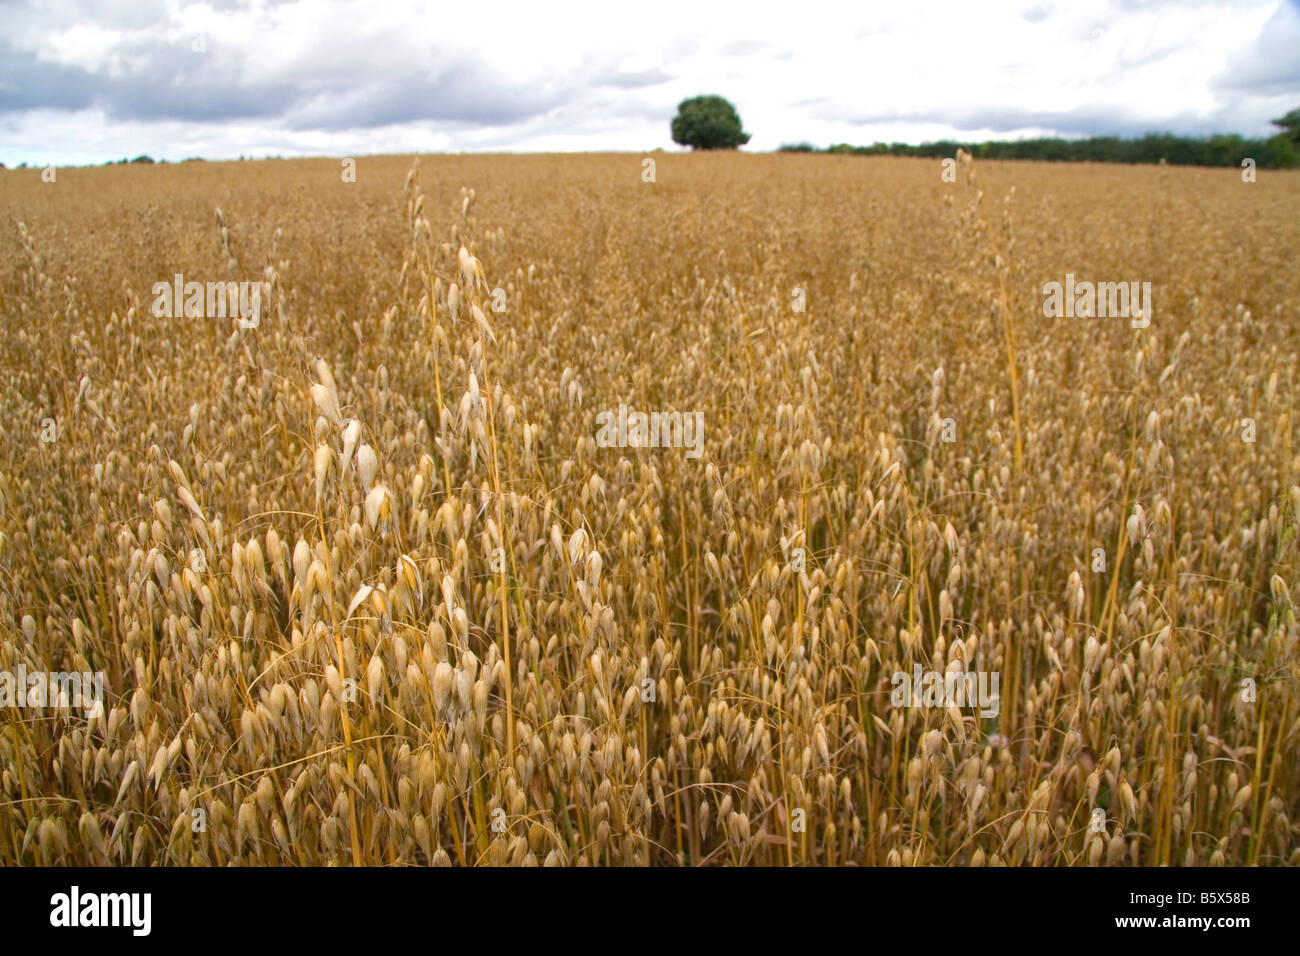 Field of ripe oats in the Cotswolds of West Central England - Stock Image